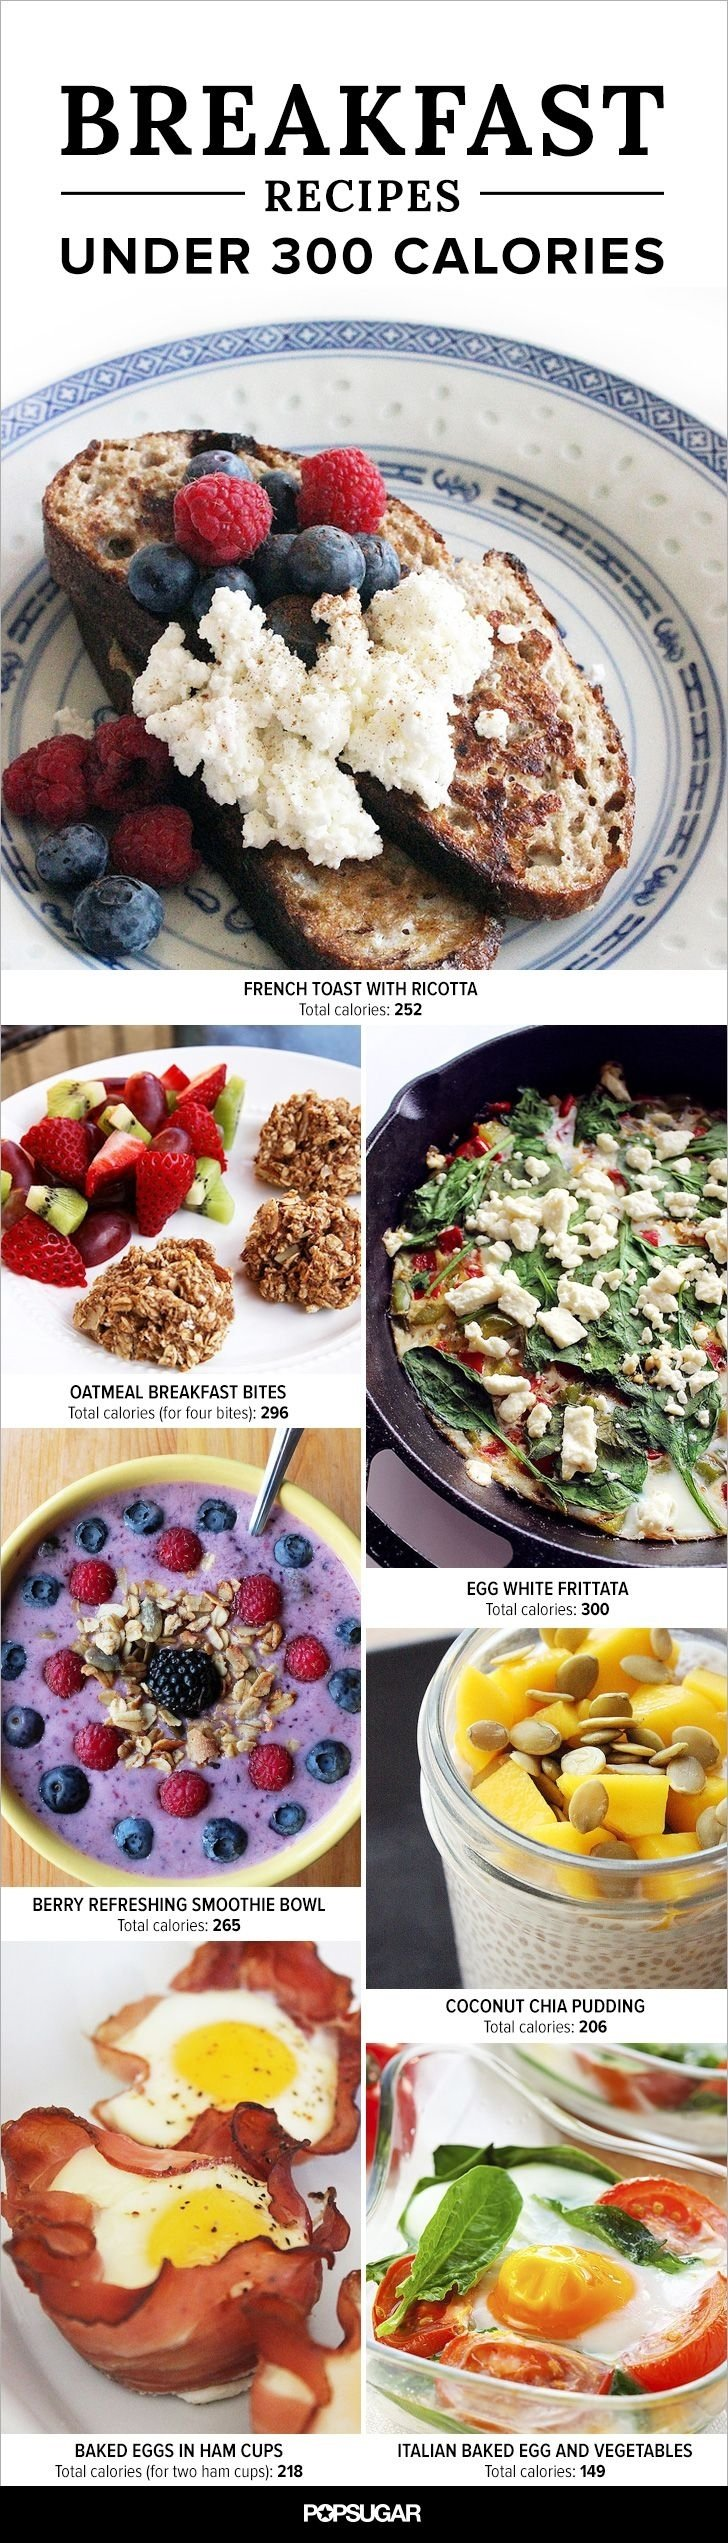 10 Fabulous Breakfast Ideas Under 300 Calories 19 satisfying breakfasts under 300 calories 300 calories light